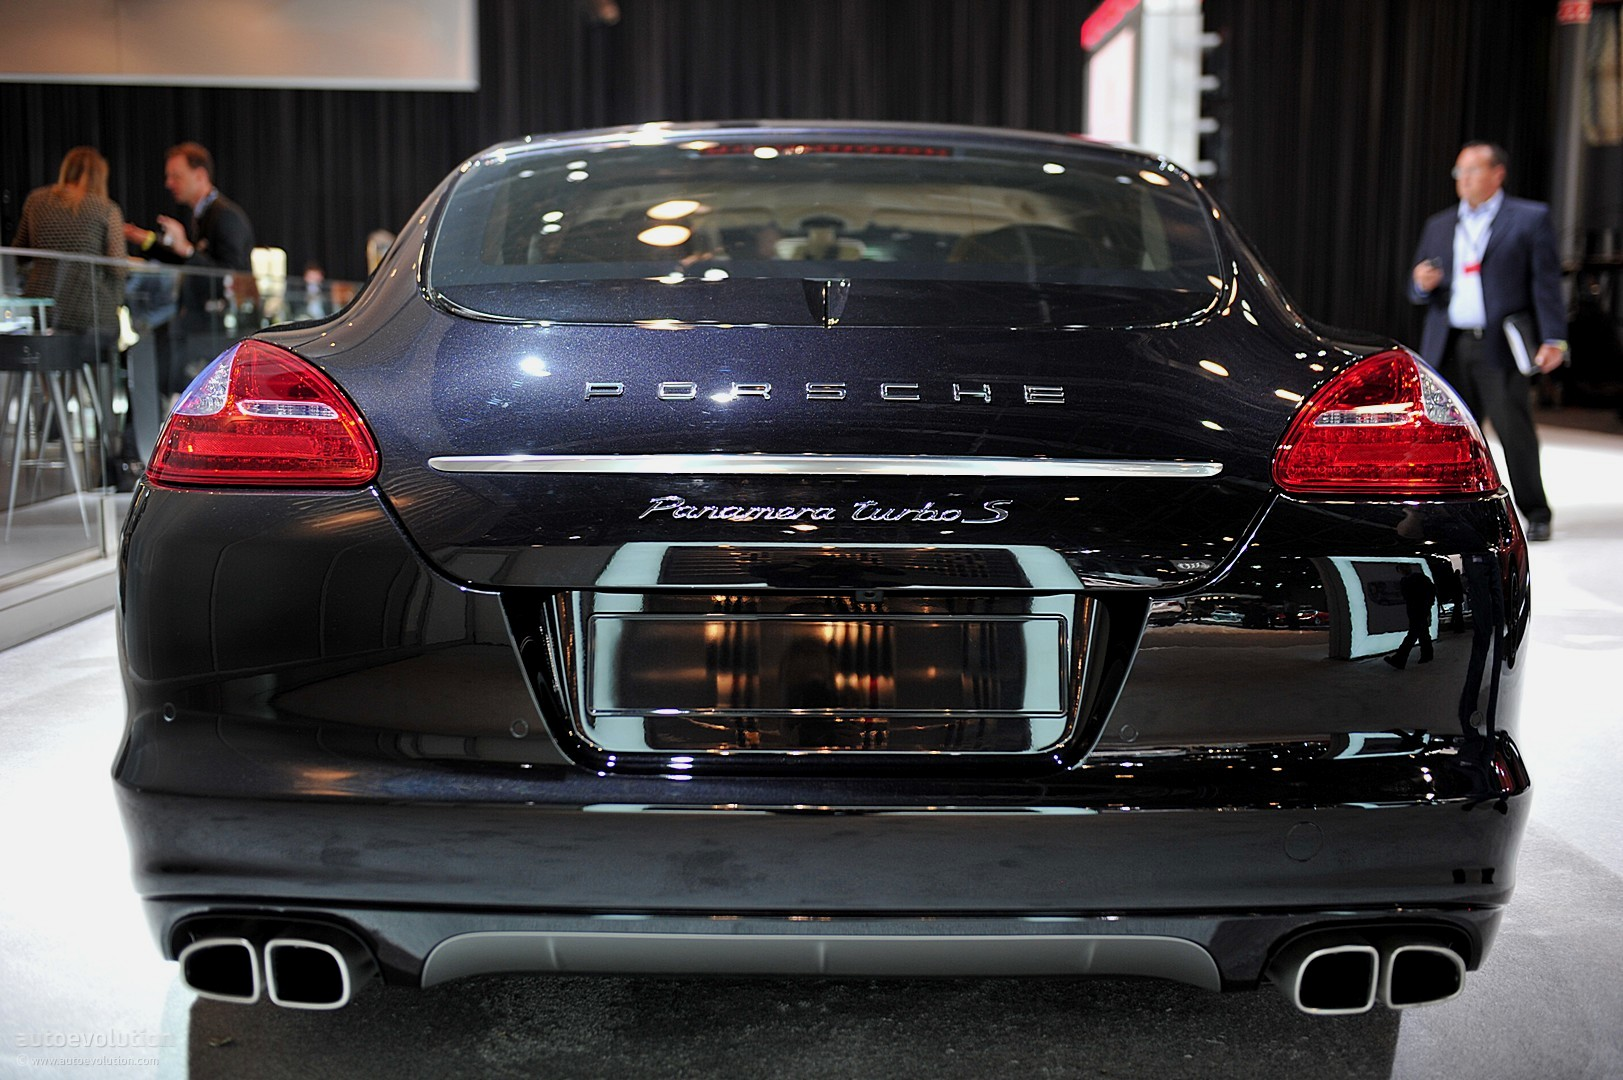 Nyias 2011 Porsche Panamera Turbo S Live Photos